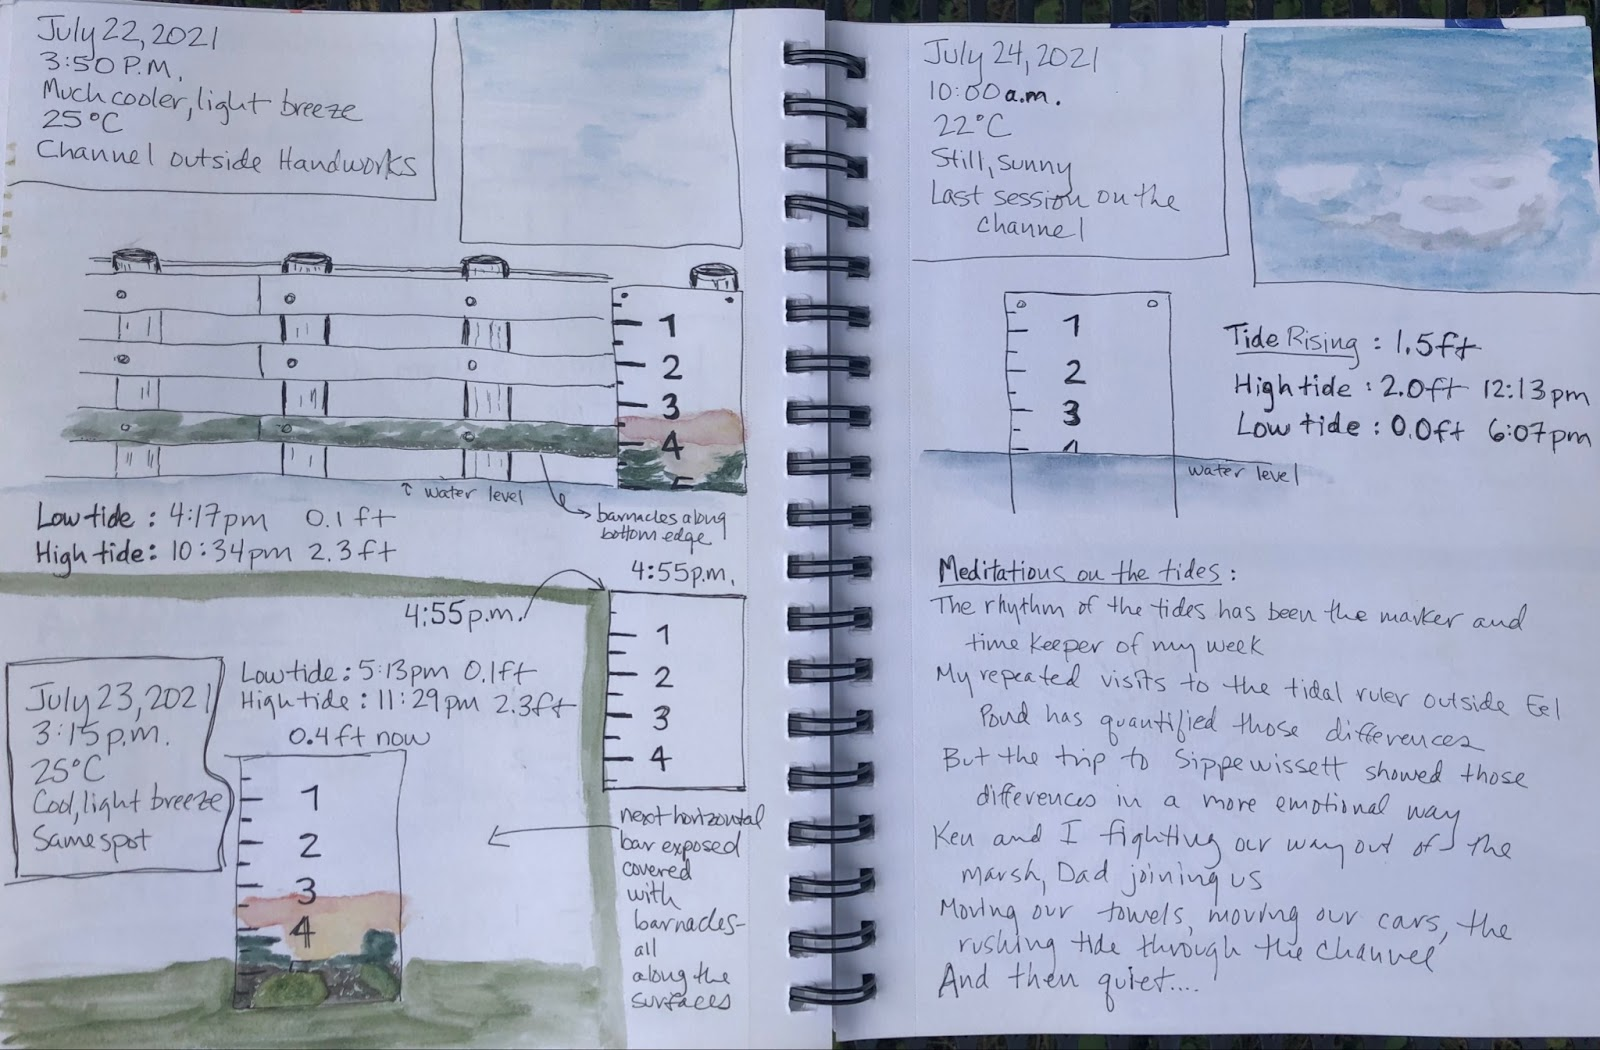 Two pages from the nature journal of Dr. Schafer detailing tide heights in July at various times.